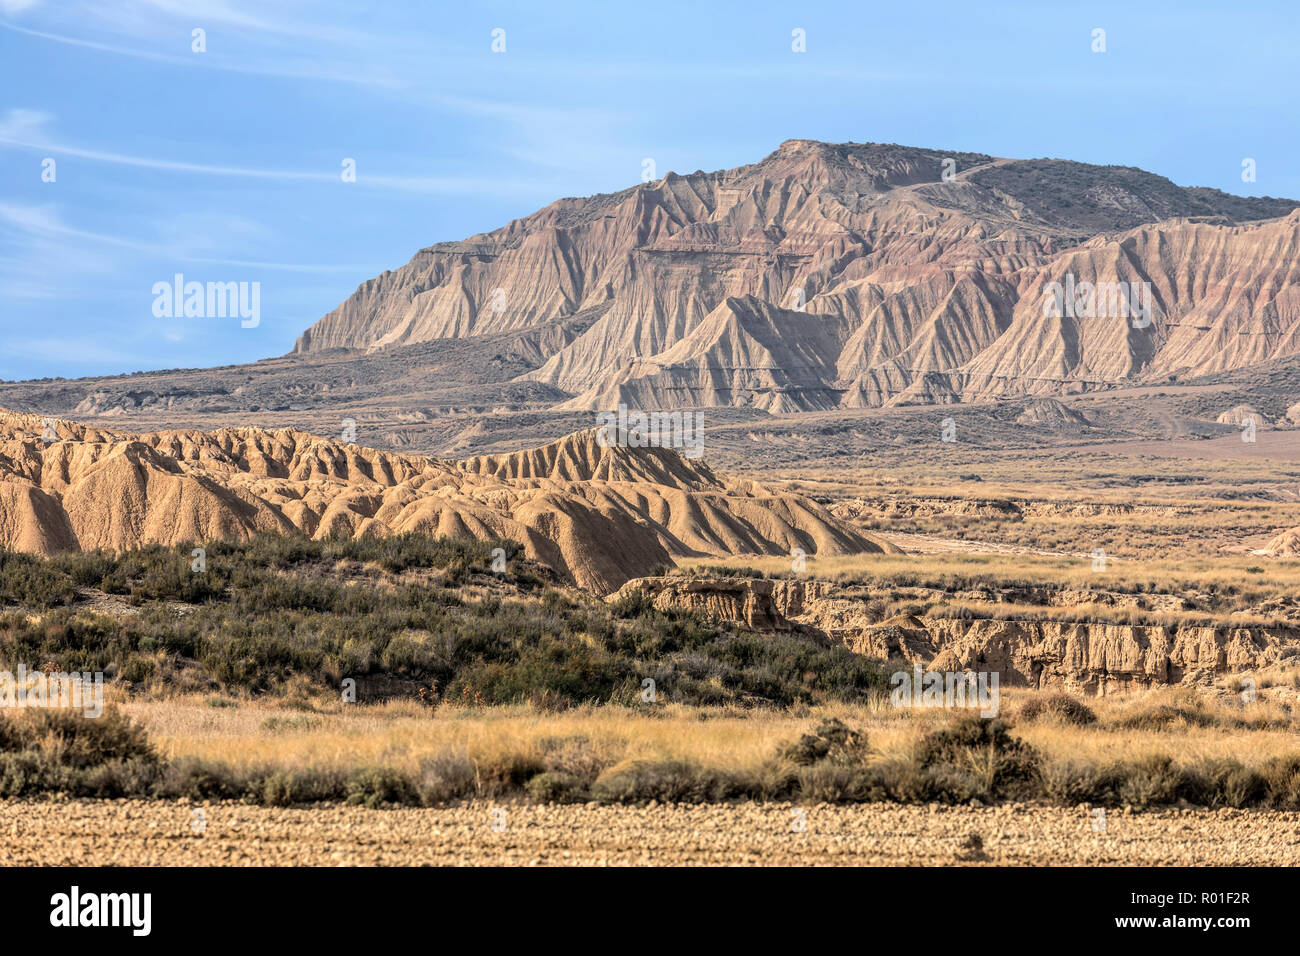 Bardenas Reales, Basque Country, Spain, Europe - Stock Image